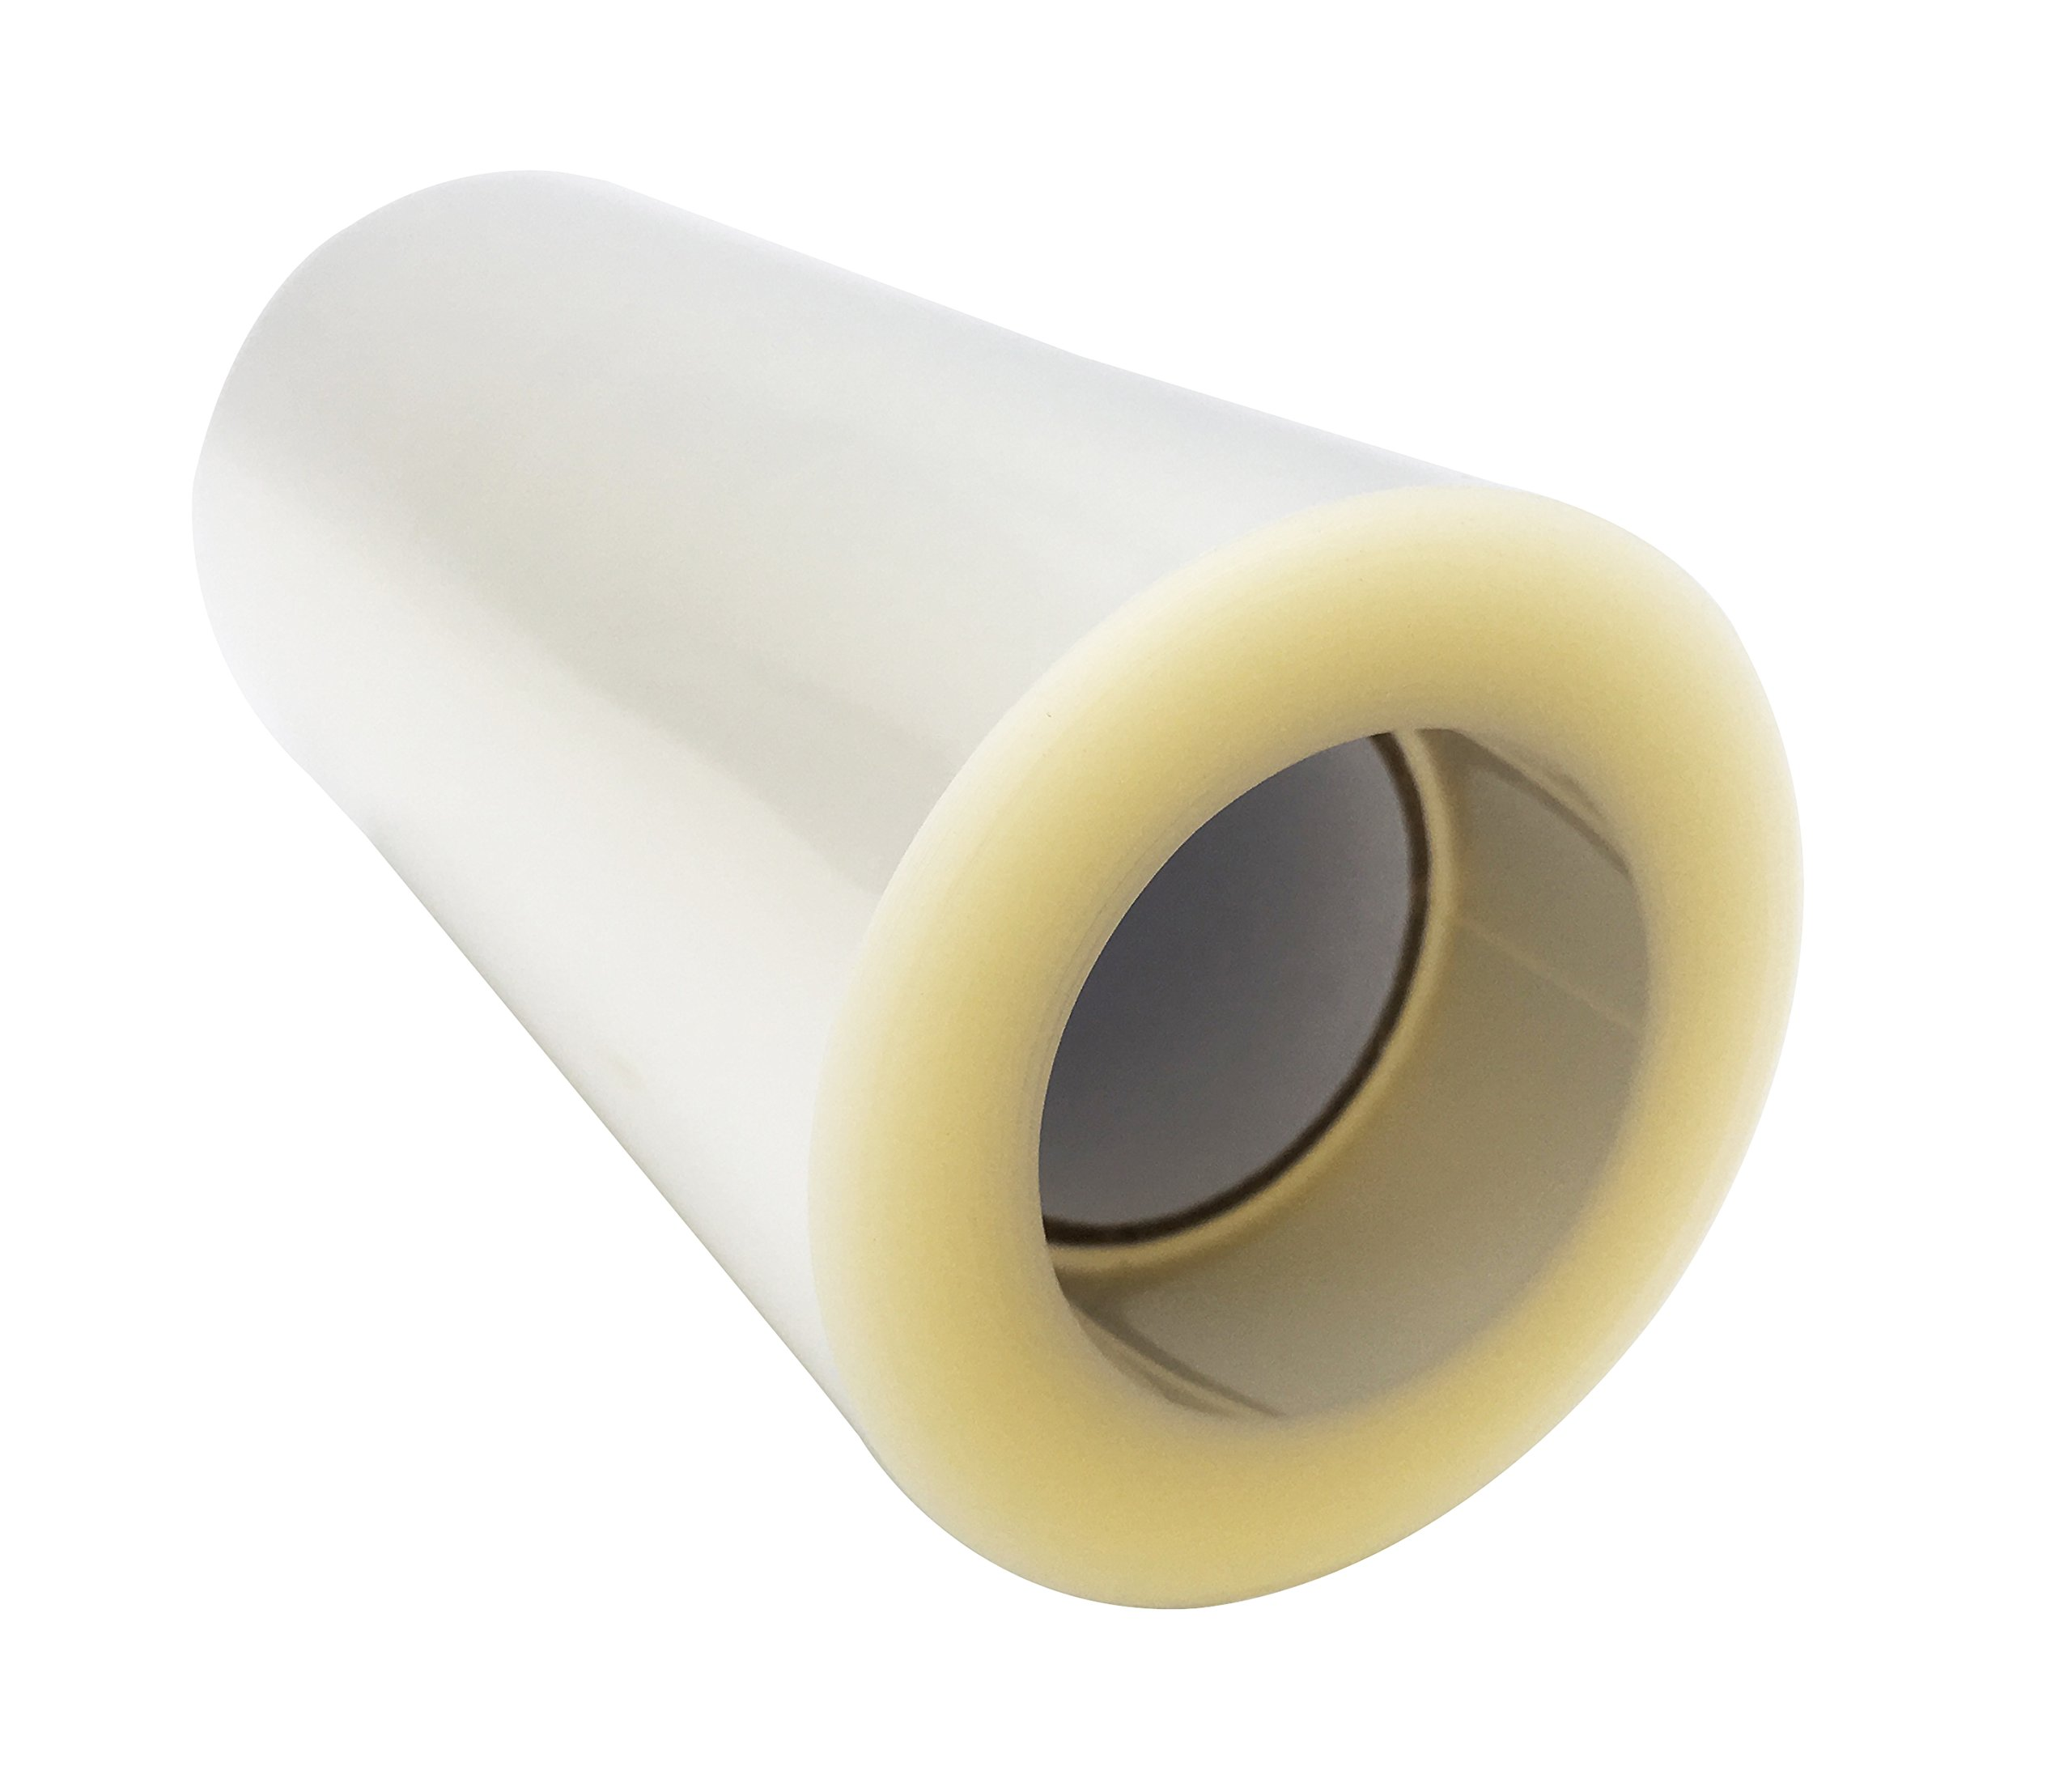 Cake Collar, KOOTIPS Chocolate Mousse and Cake Decorating Acetate Sheet CLEAR ACETATE ROLL 125 Micron 32.8 Feet Long (3.9x 393inch)